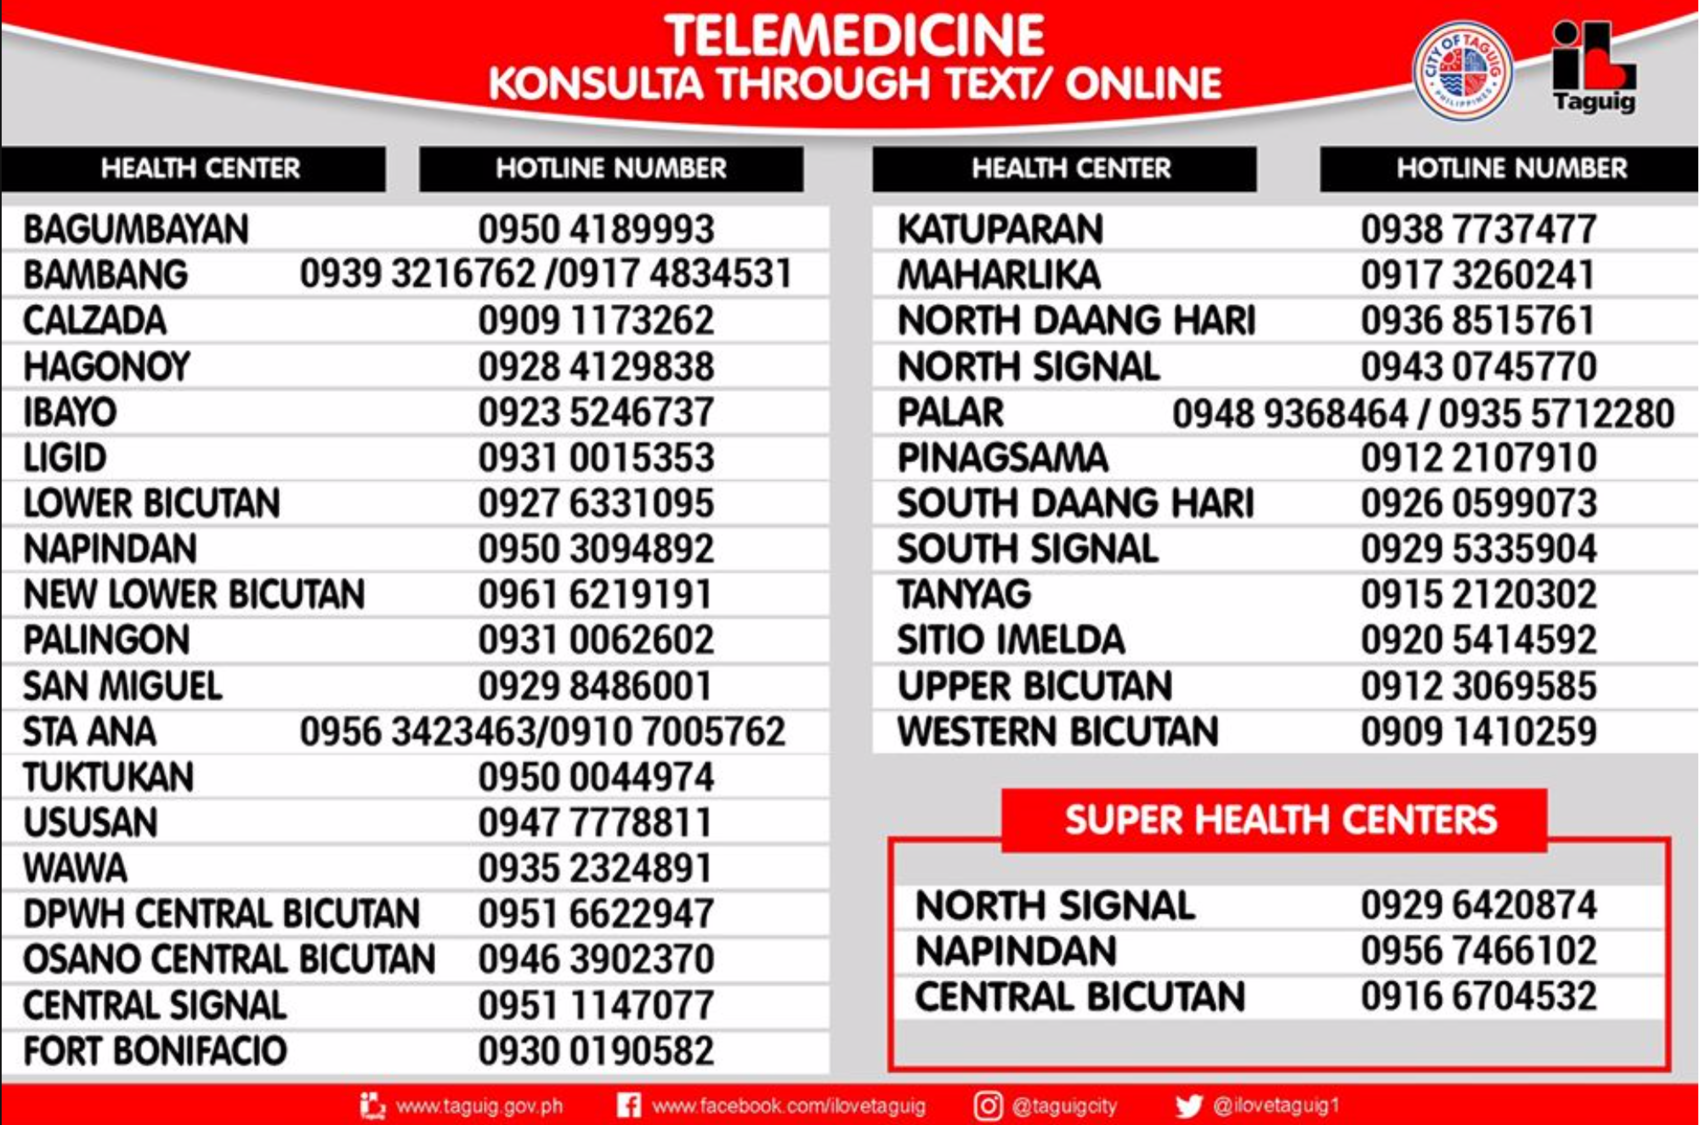 infographic on Taguig's Telemedicine program